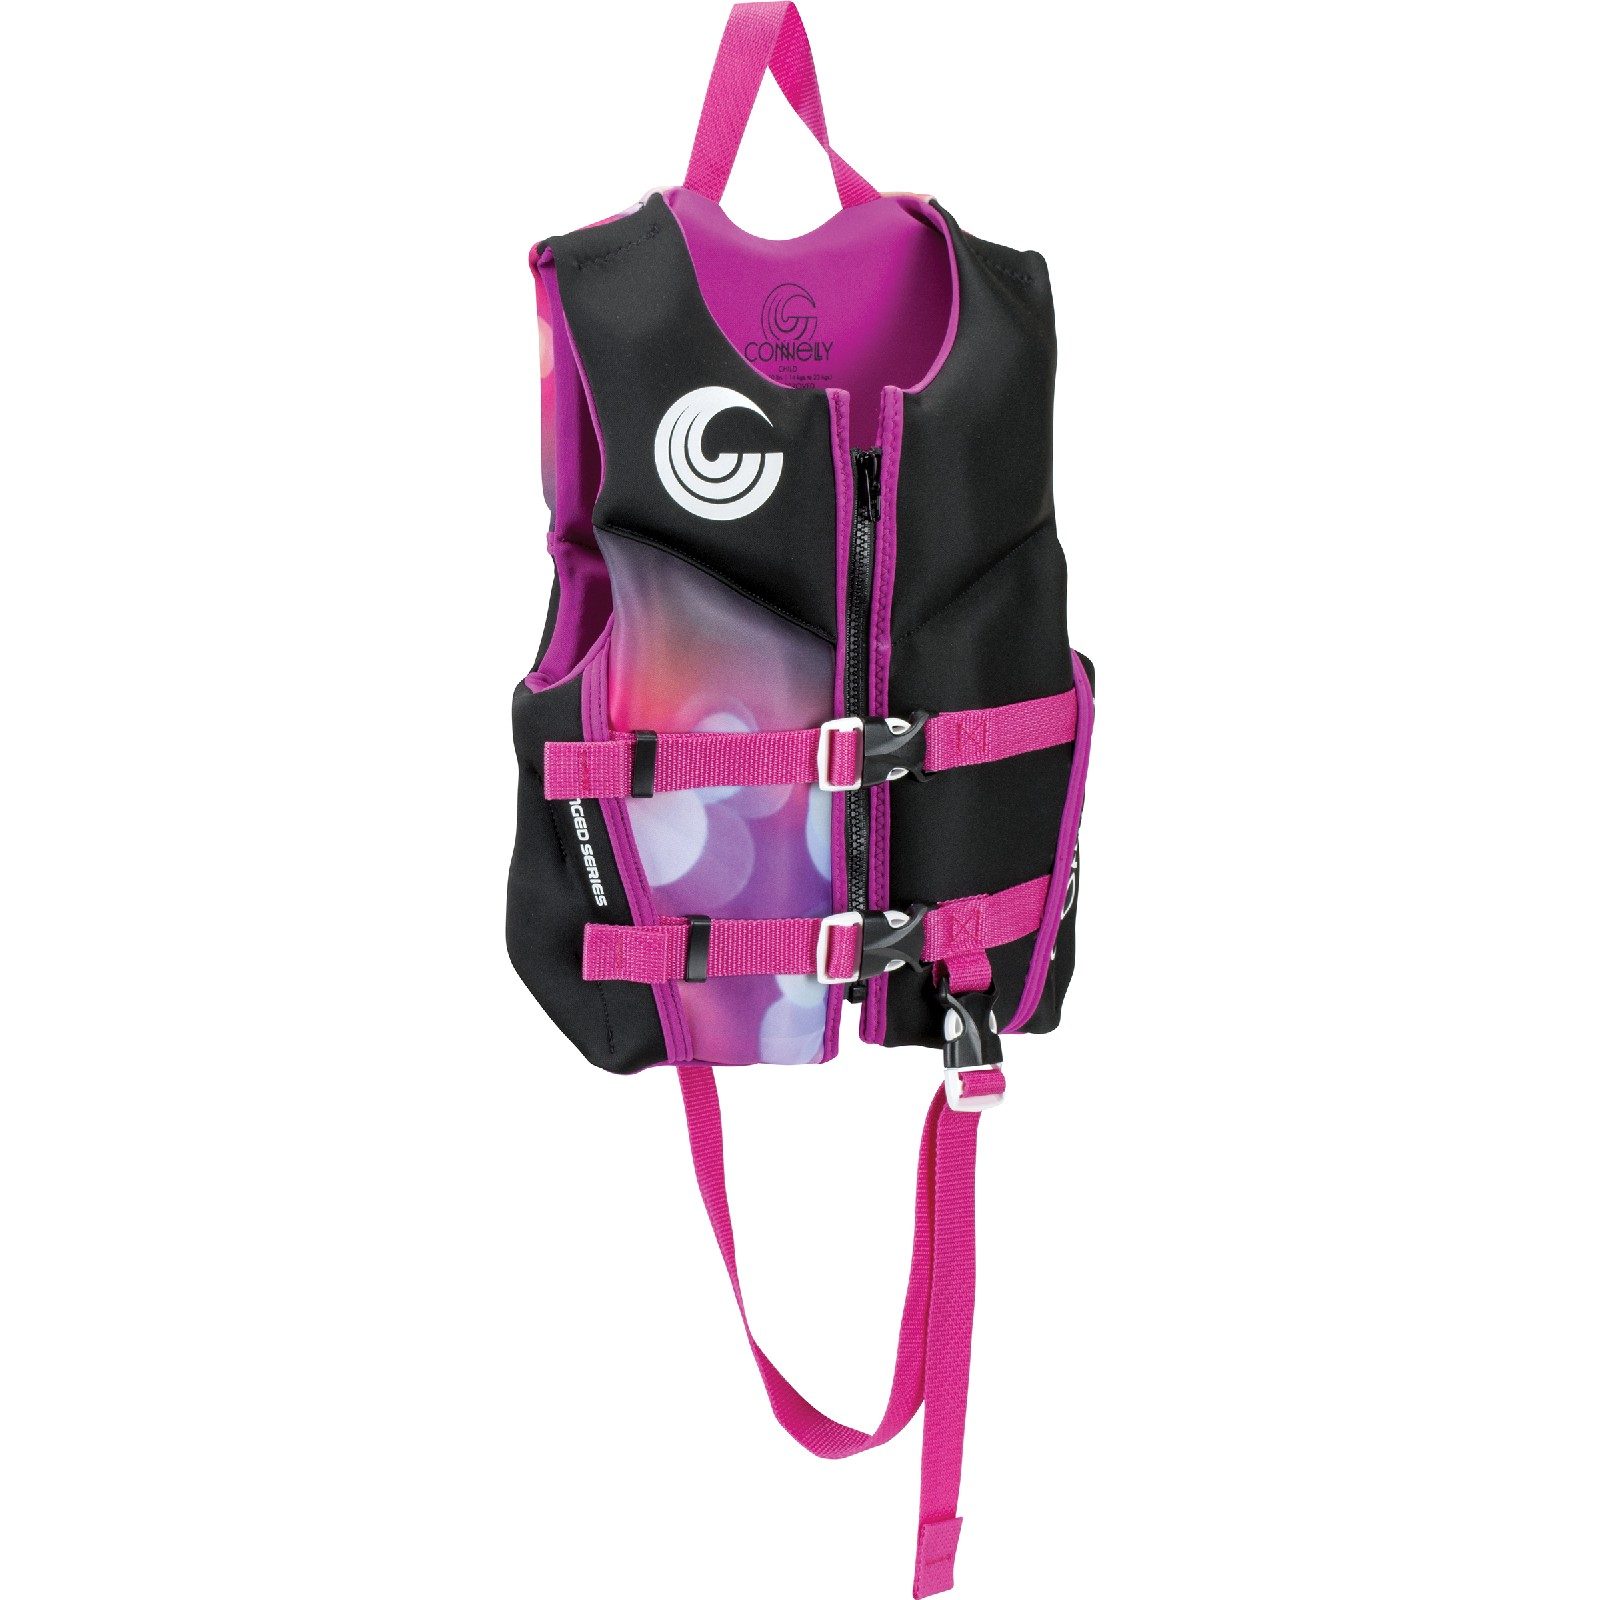 GIRL'S CLASSIC NEO LIFE VEST - CHILD 13-23KG CONNELLY 2019